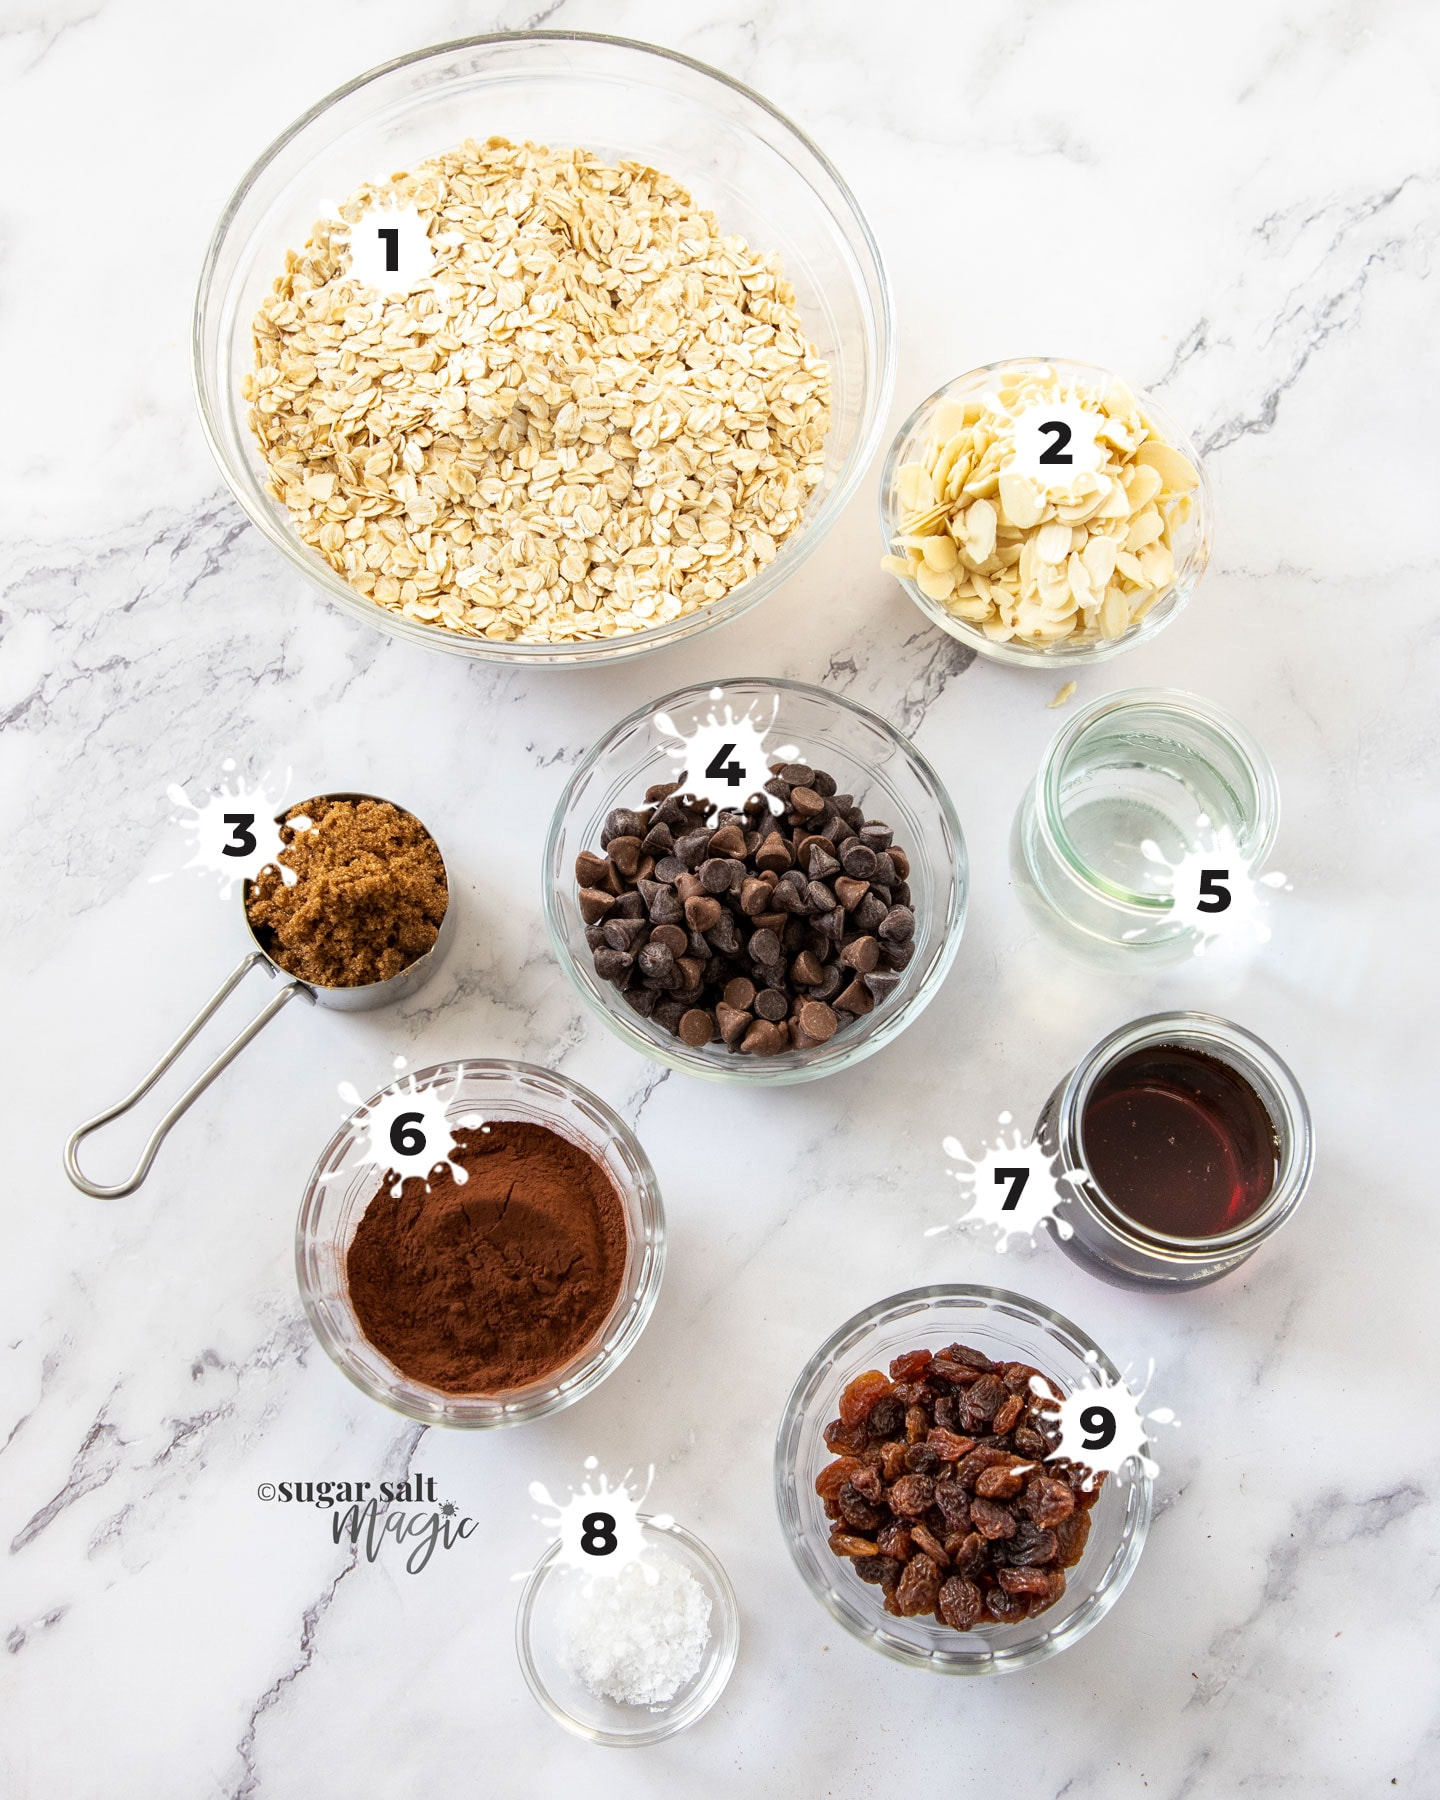 Ingredients for chocolate granola on a marble bench top.